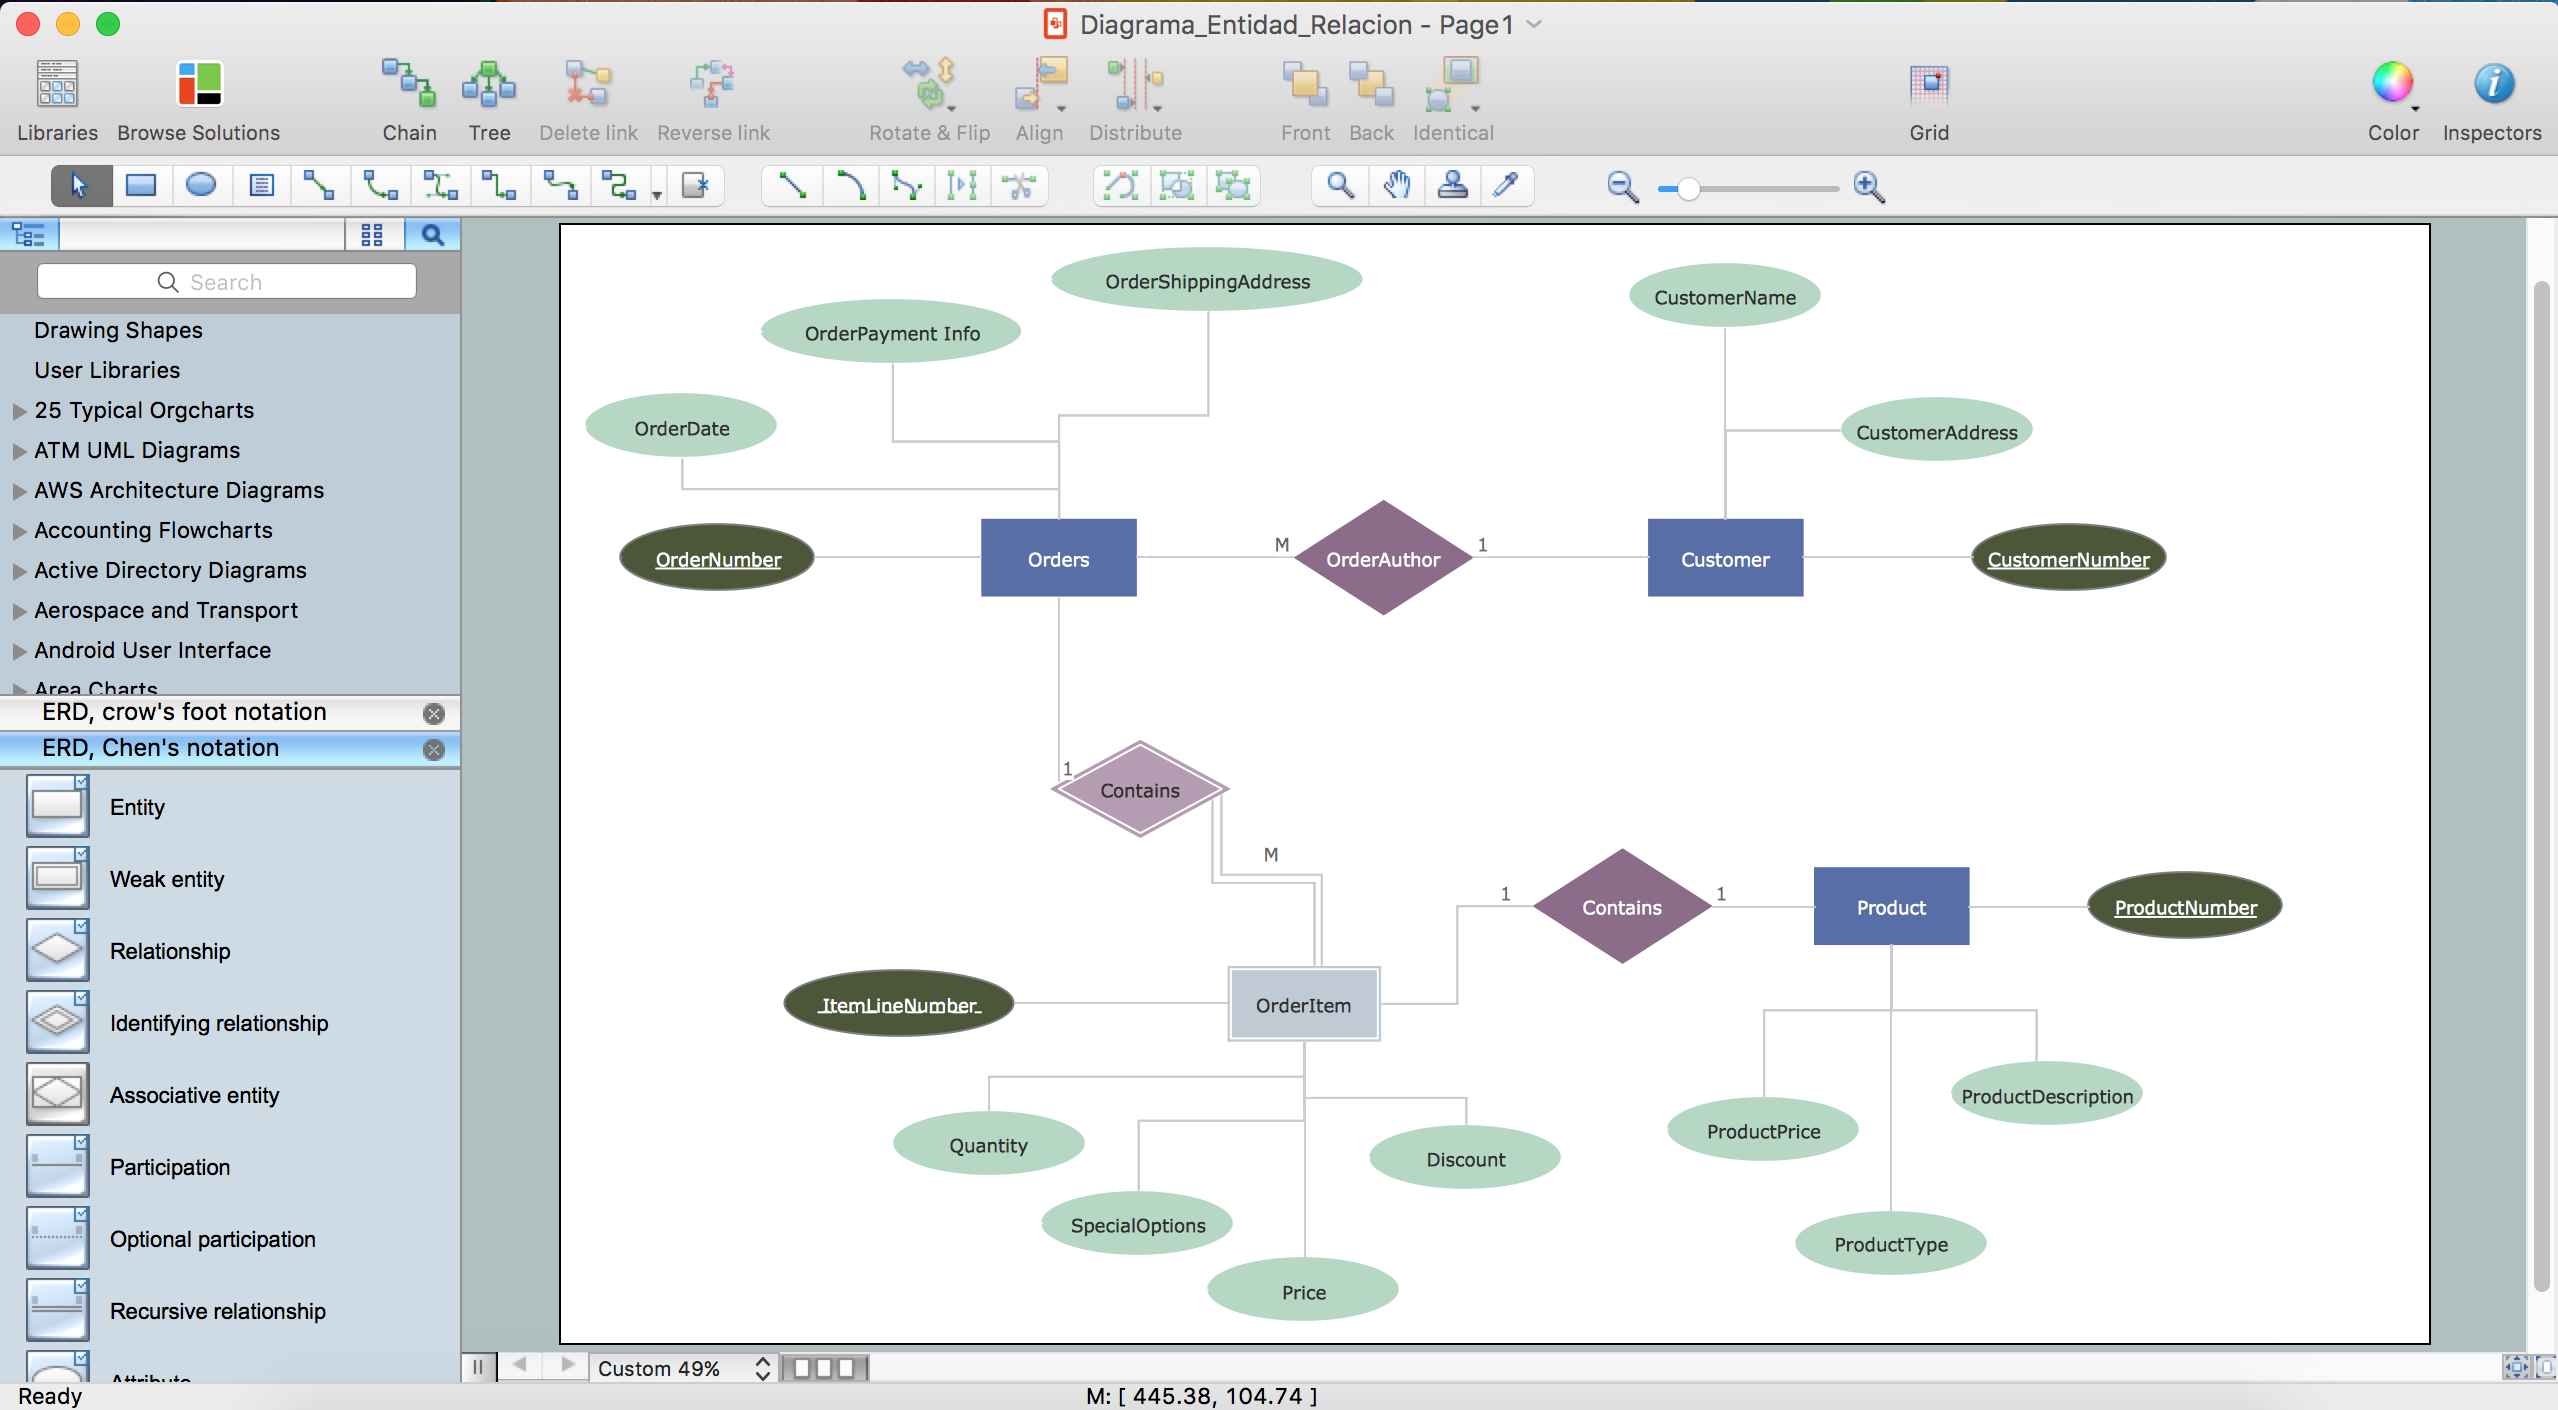 ER diagram tool for OS X | Entity Relationship Diagram - ERD ...